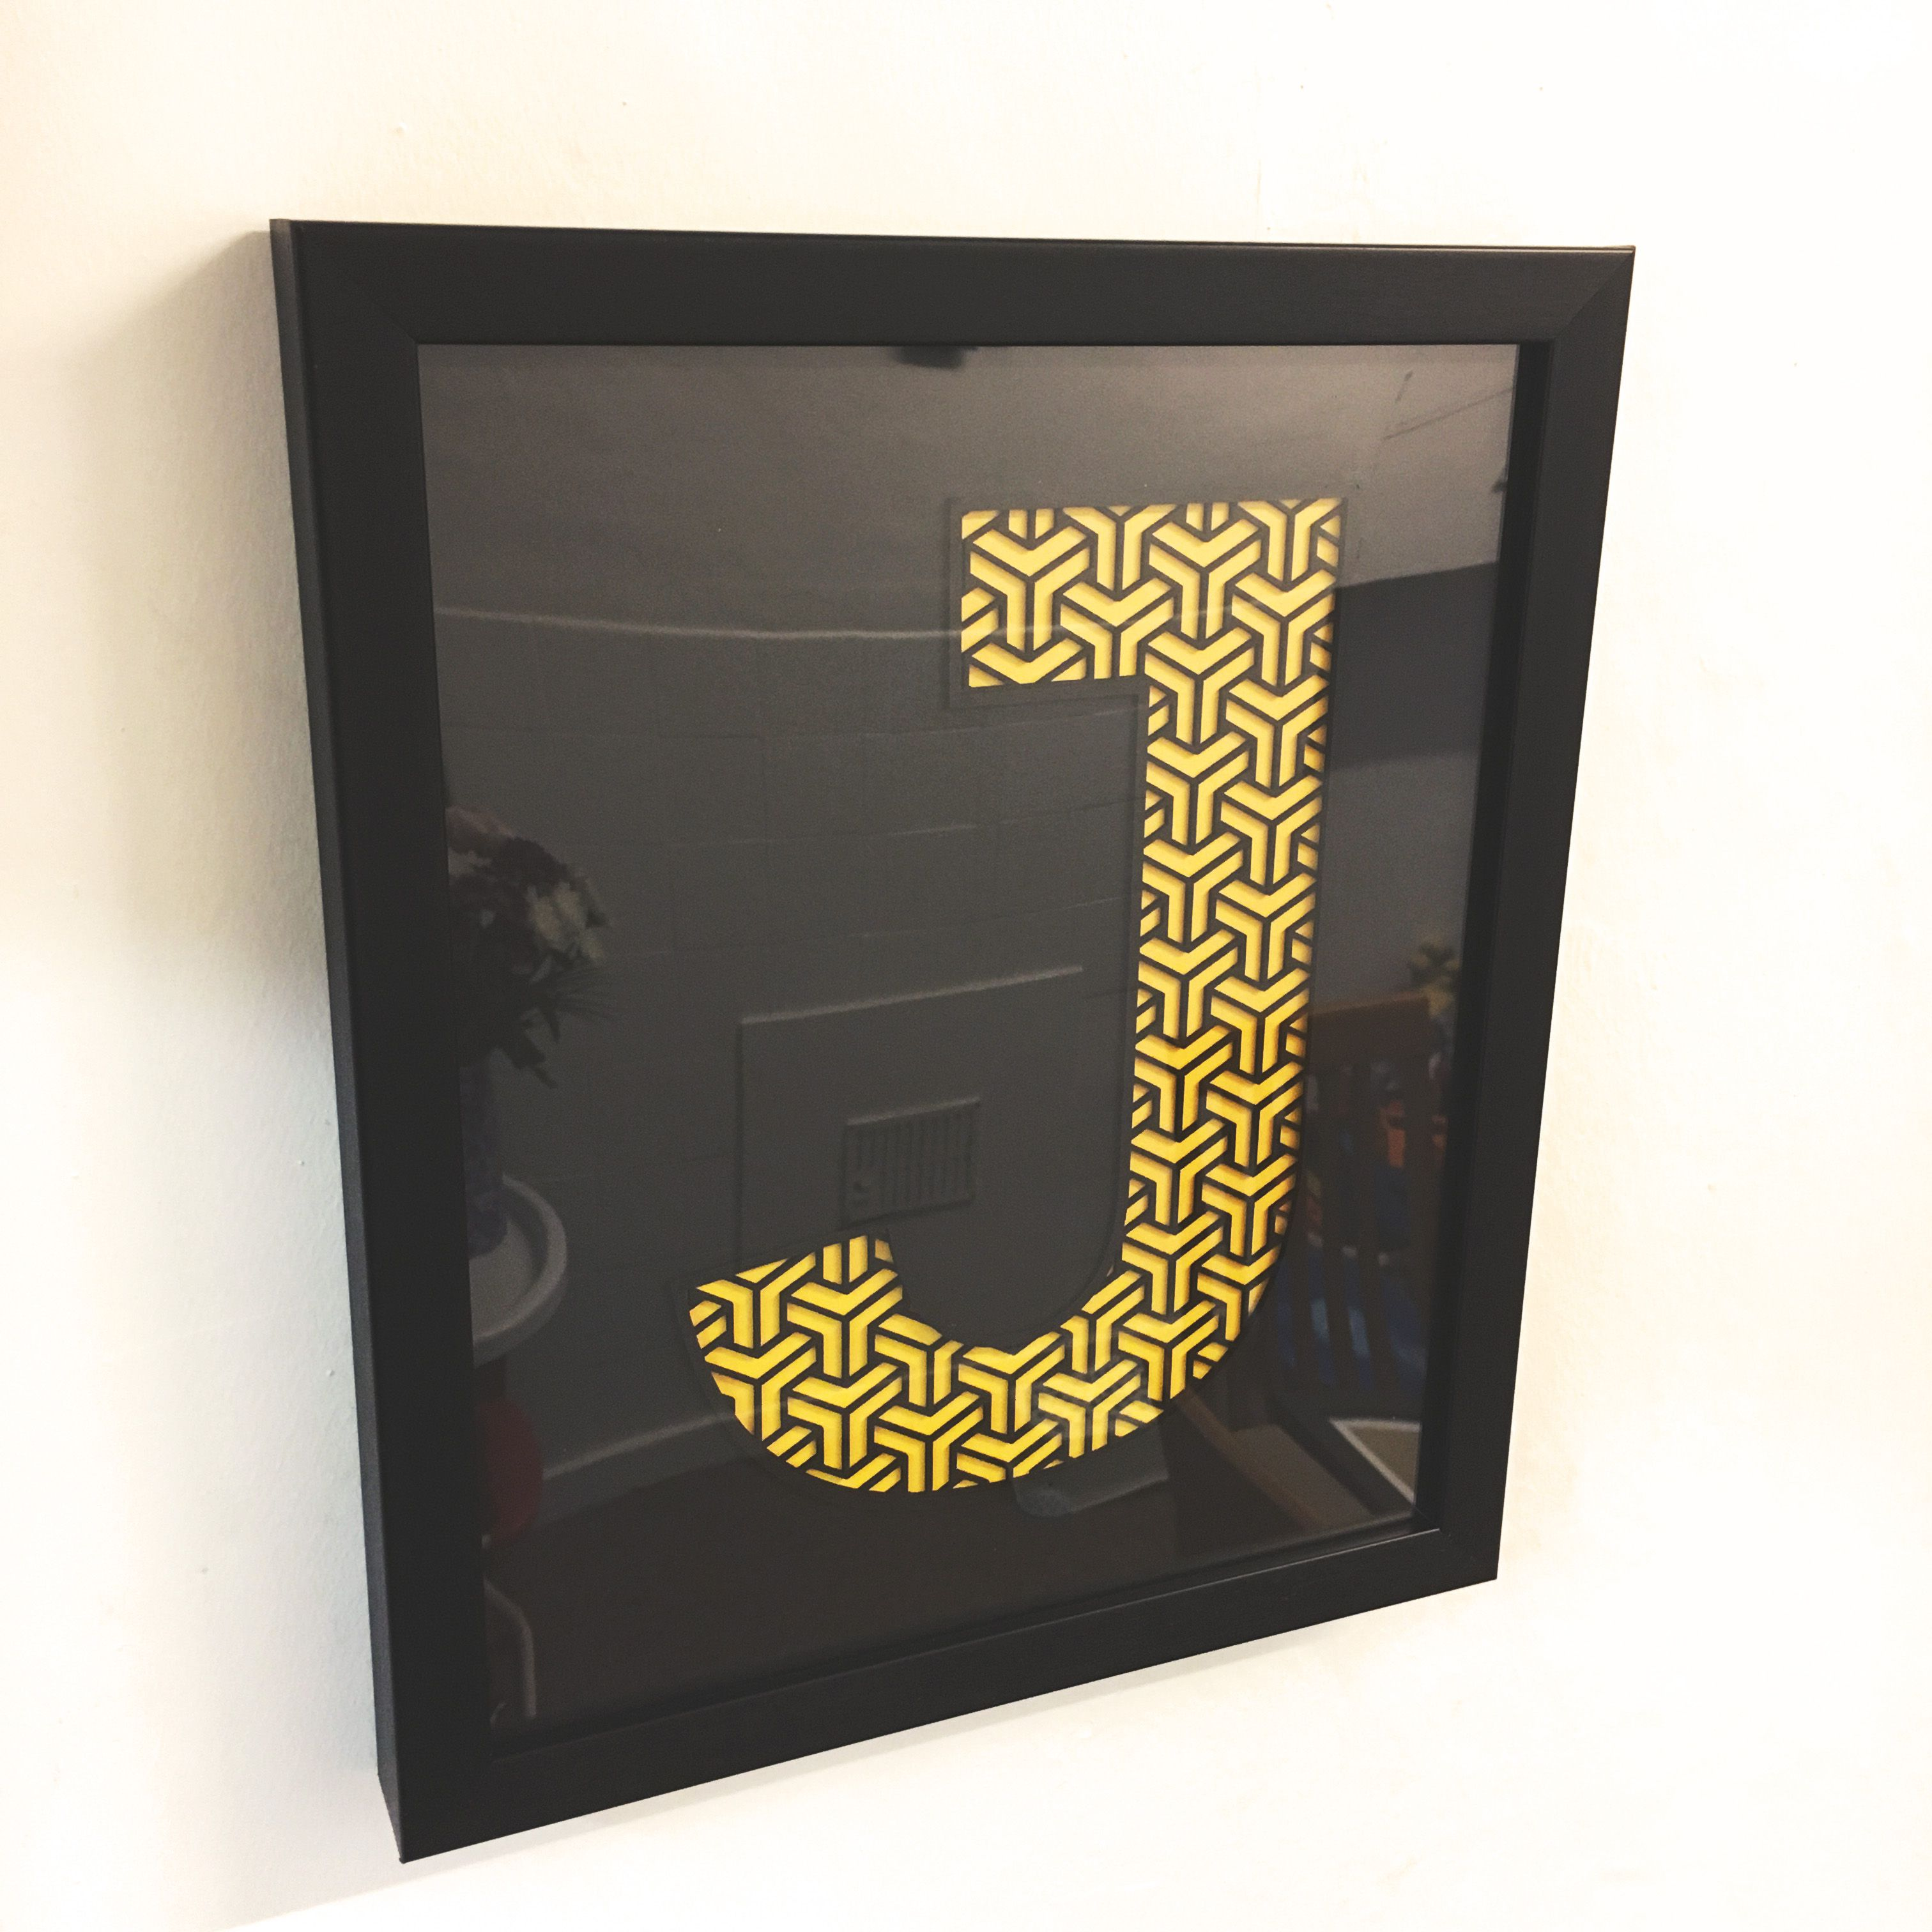 a framed piece with